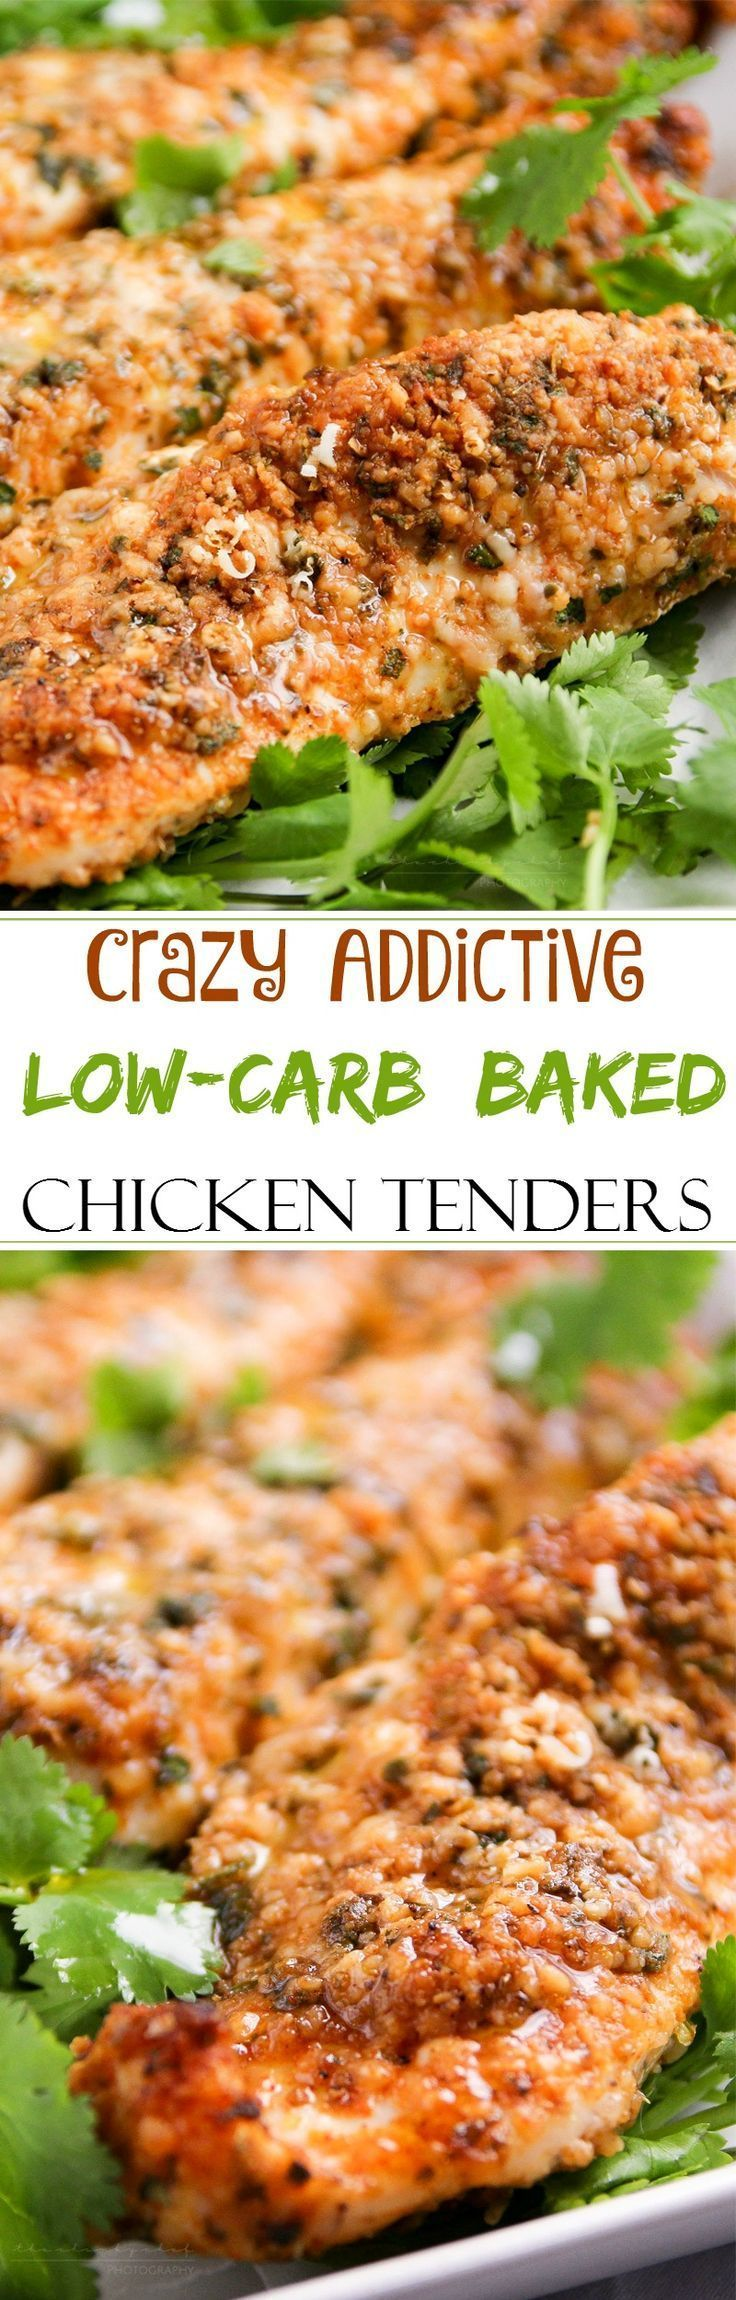 Best 25+ Baked Chicken Tenderloins Ideas Only On Pinterest  Boneless  Chicken Breast, Breaded Chicken Recipes And Clean Eating Dinner Recipes